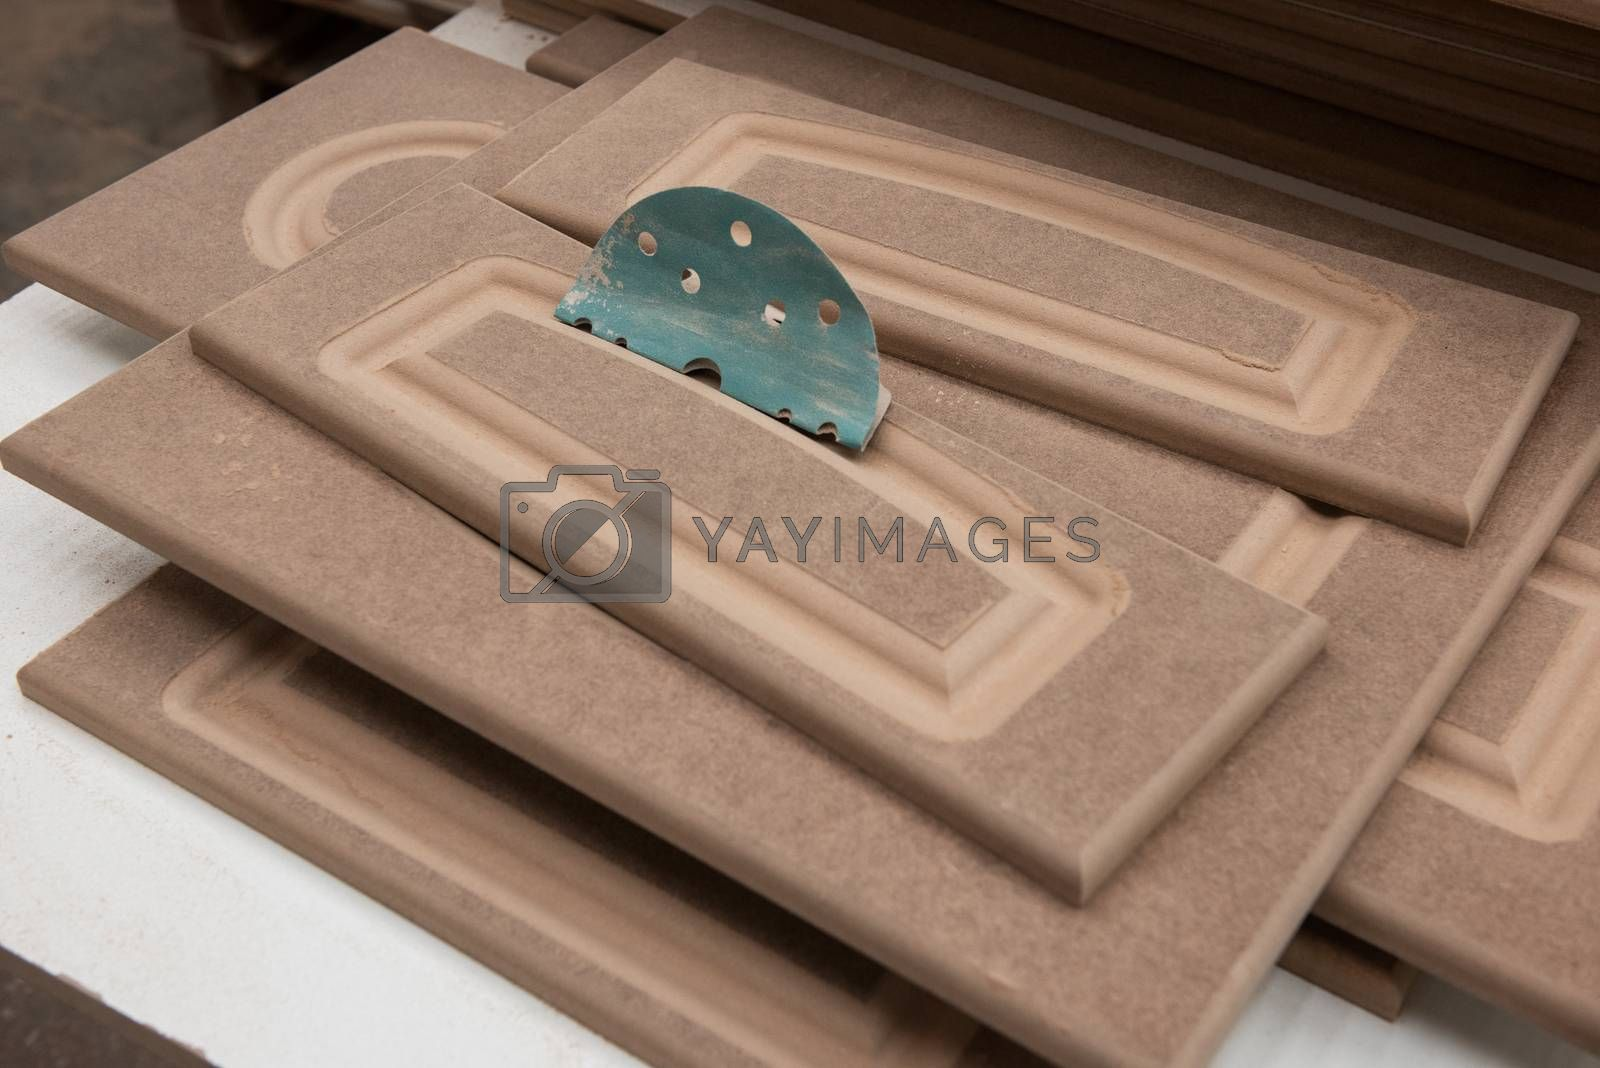 Wooden furniture production. Wooden surface of the furniture facade